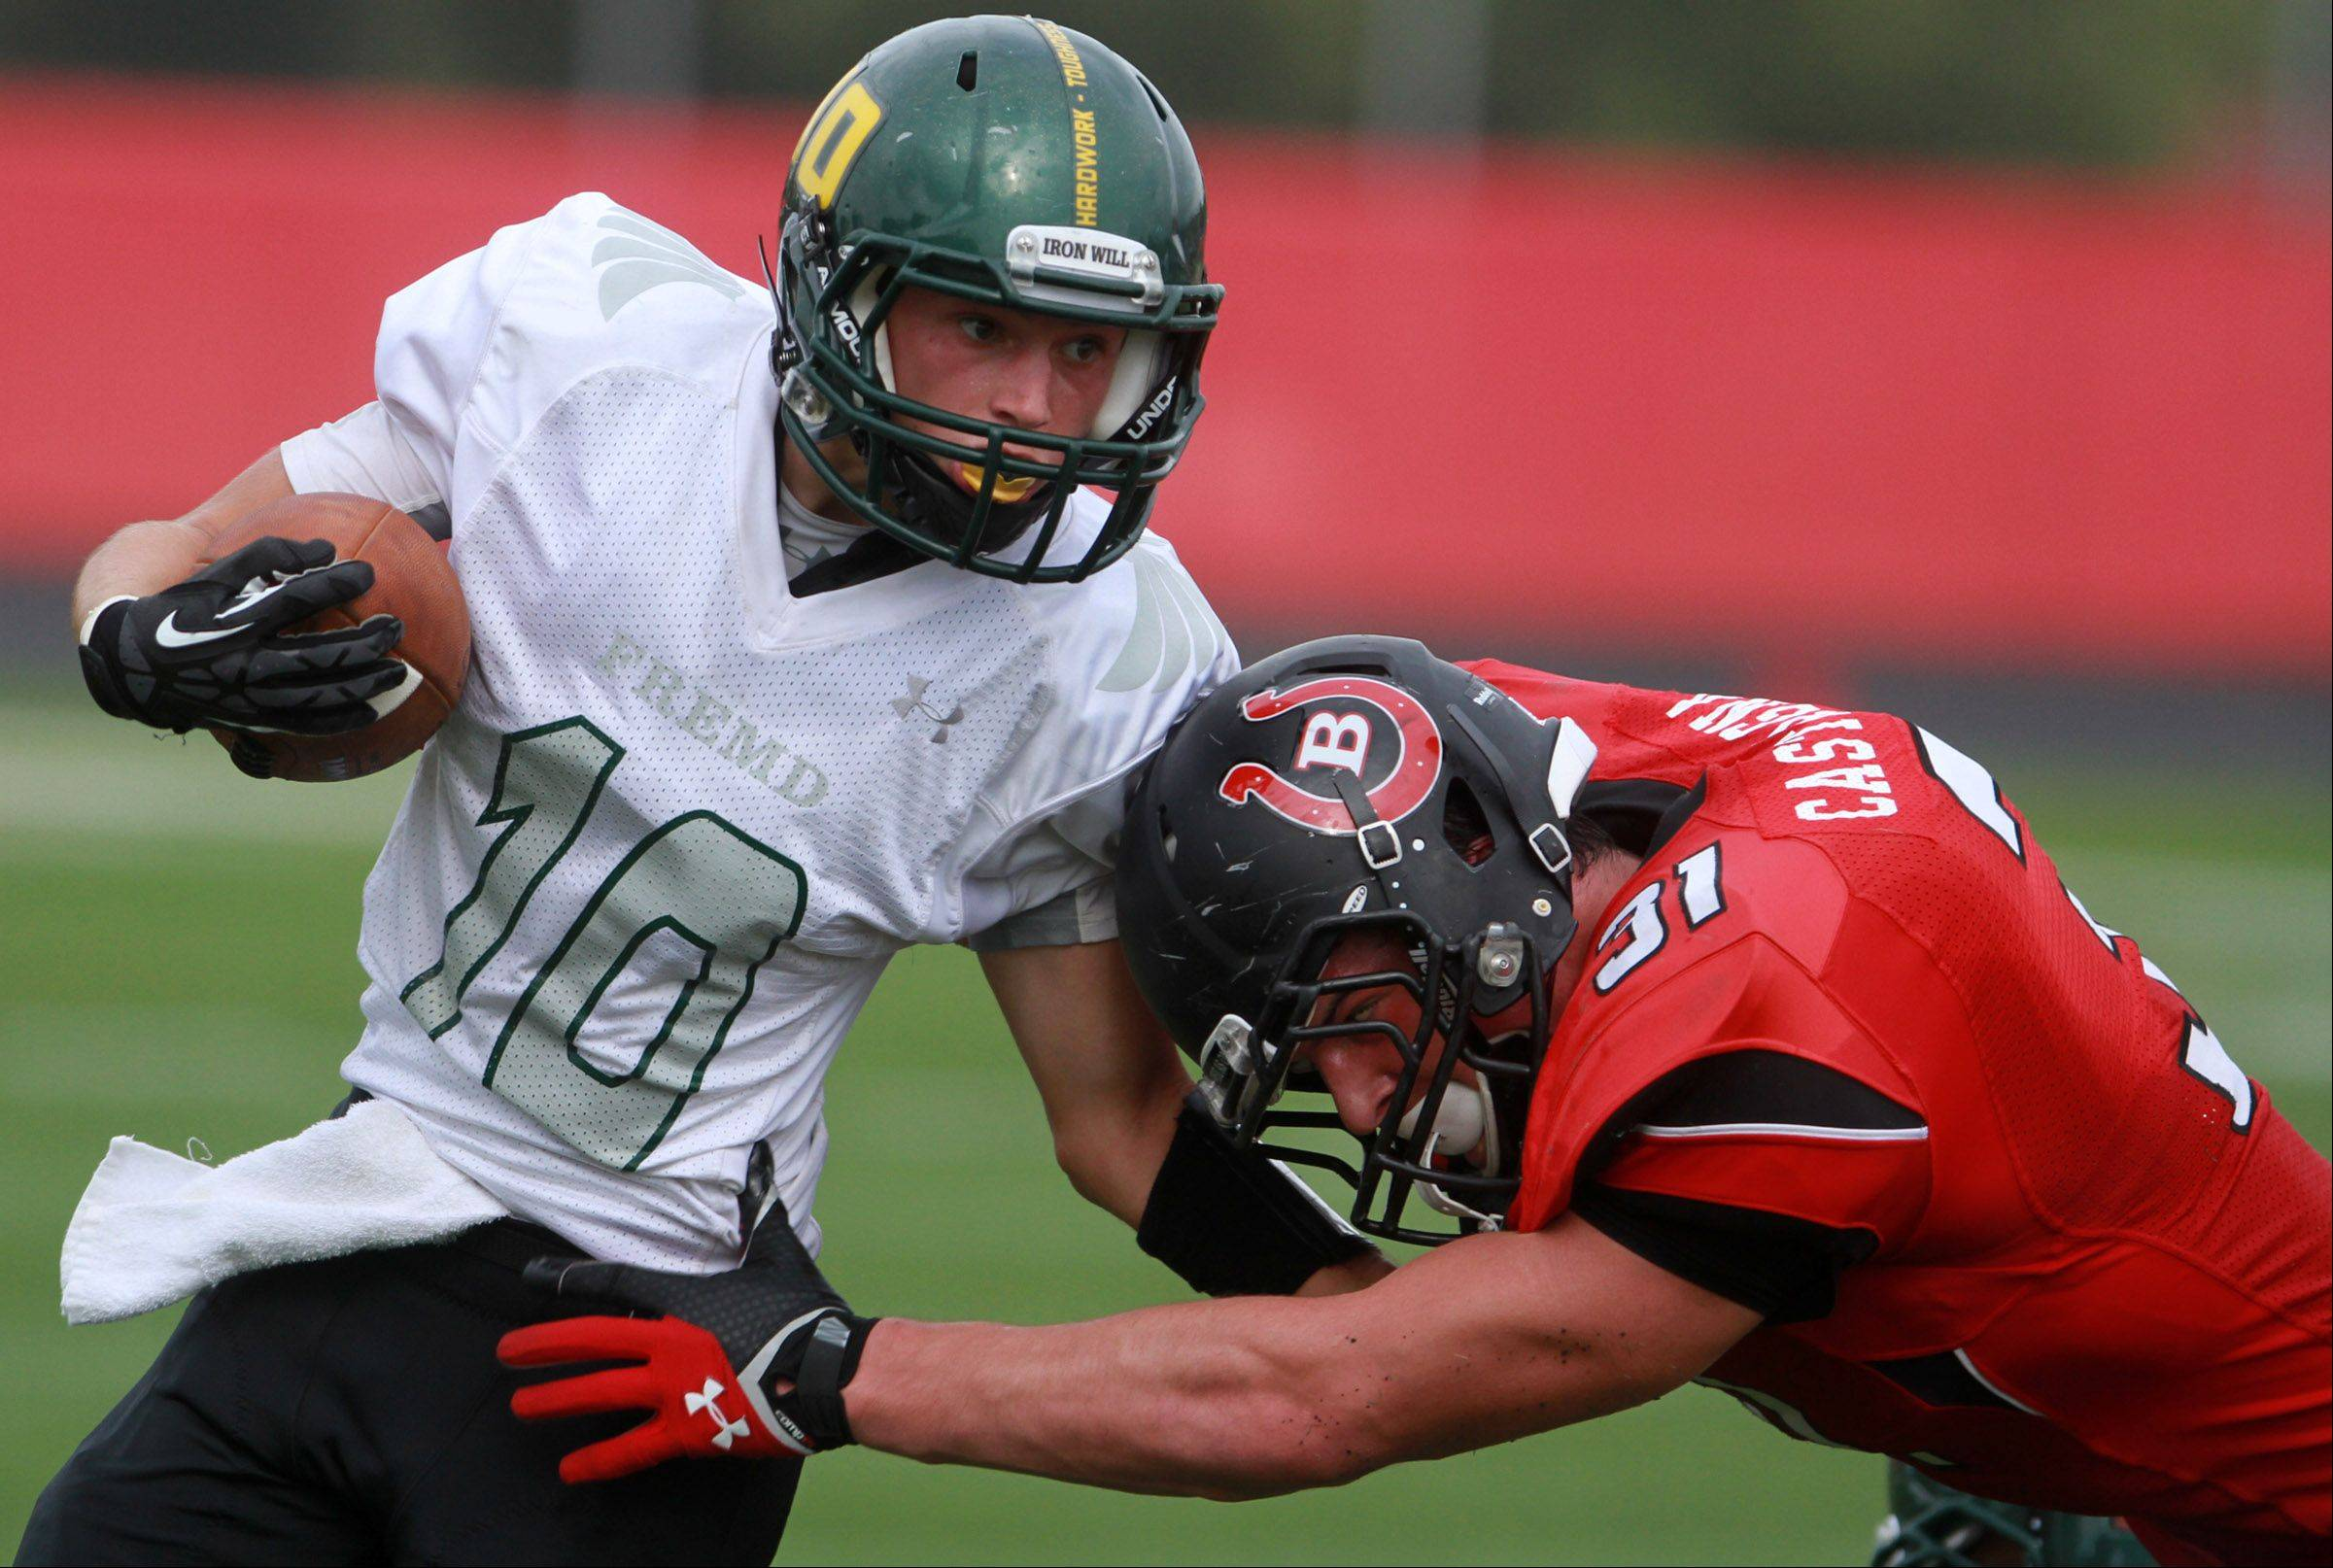 Fremd wide-receiver Anthony Halvorsen is pulled down by Barrington defender Colin Castagna at Barrington on Saturday,October 5.